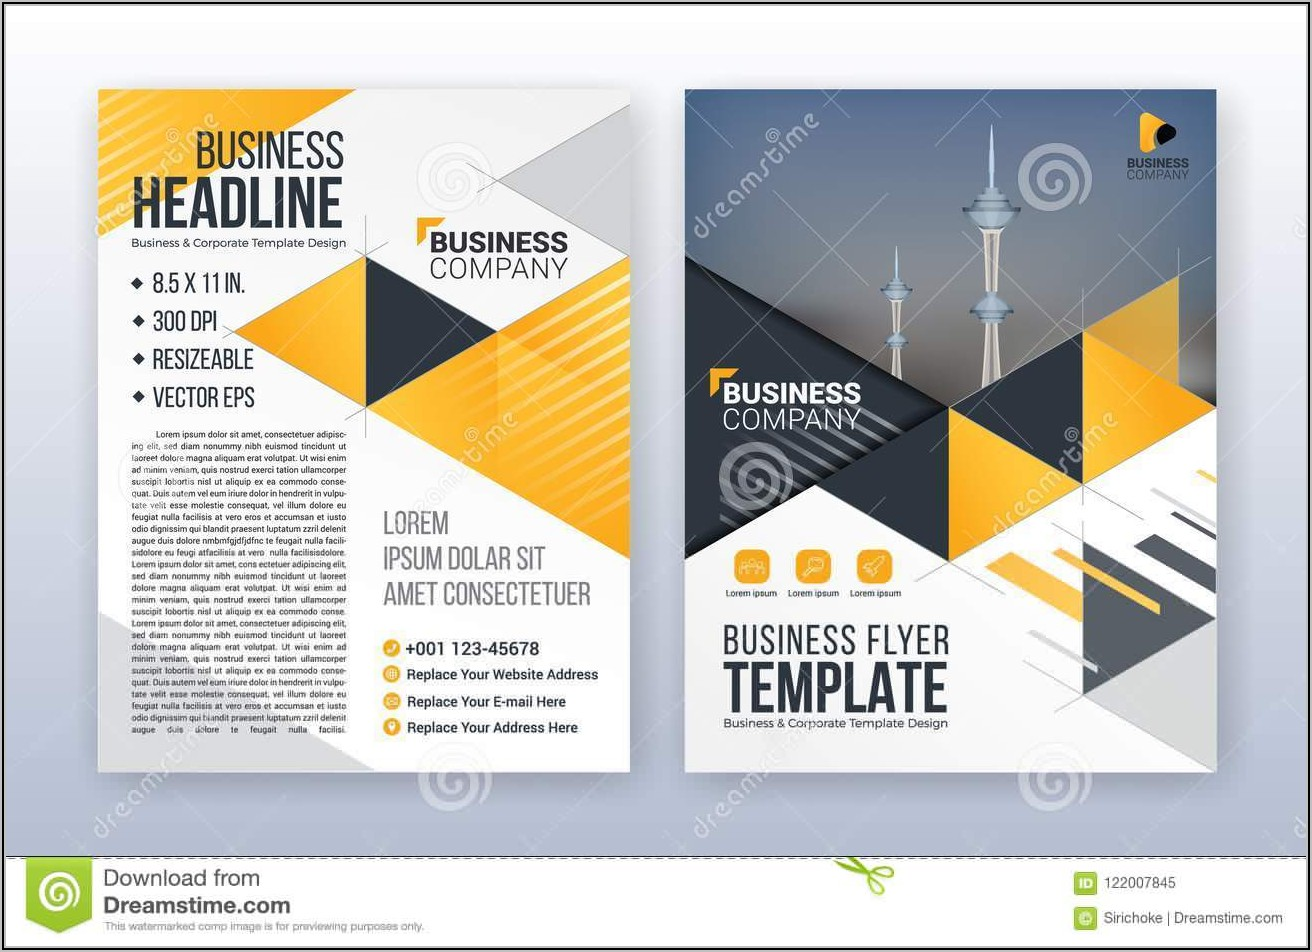 8.5 X 11 Poster Template